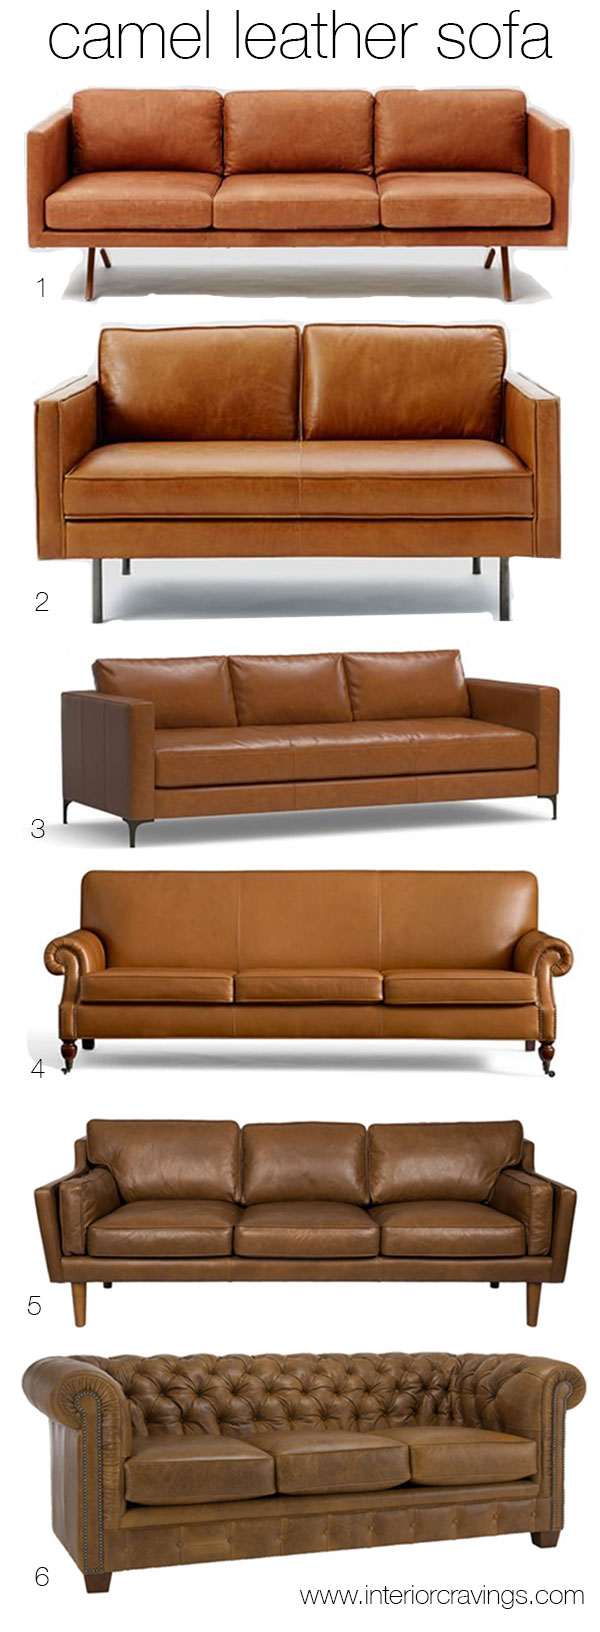 Brand-new CAMEL LEATHER SOFAS inspiration and sources | Interior Cravings  IX21